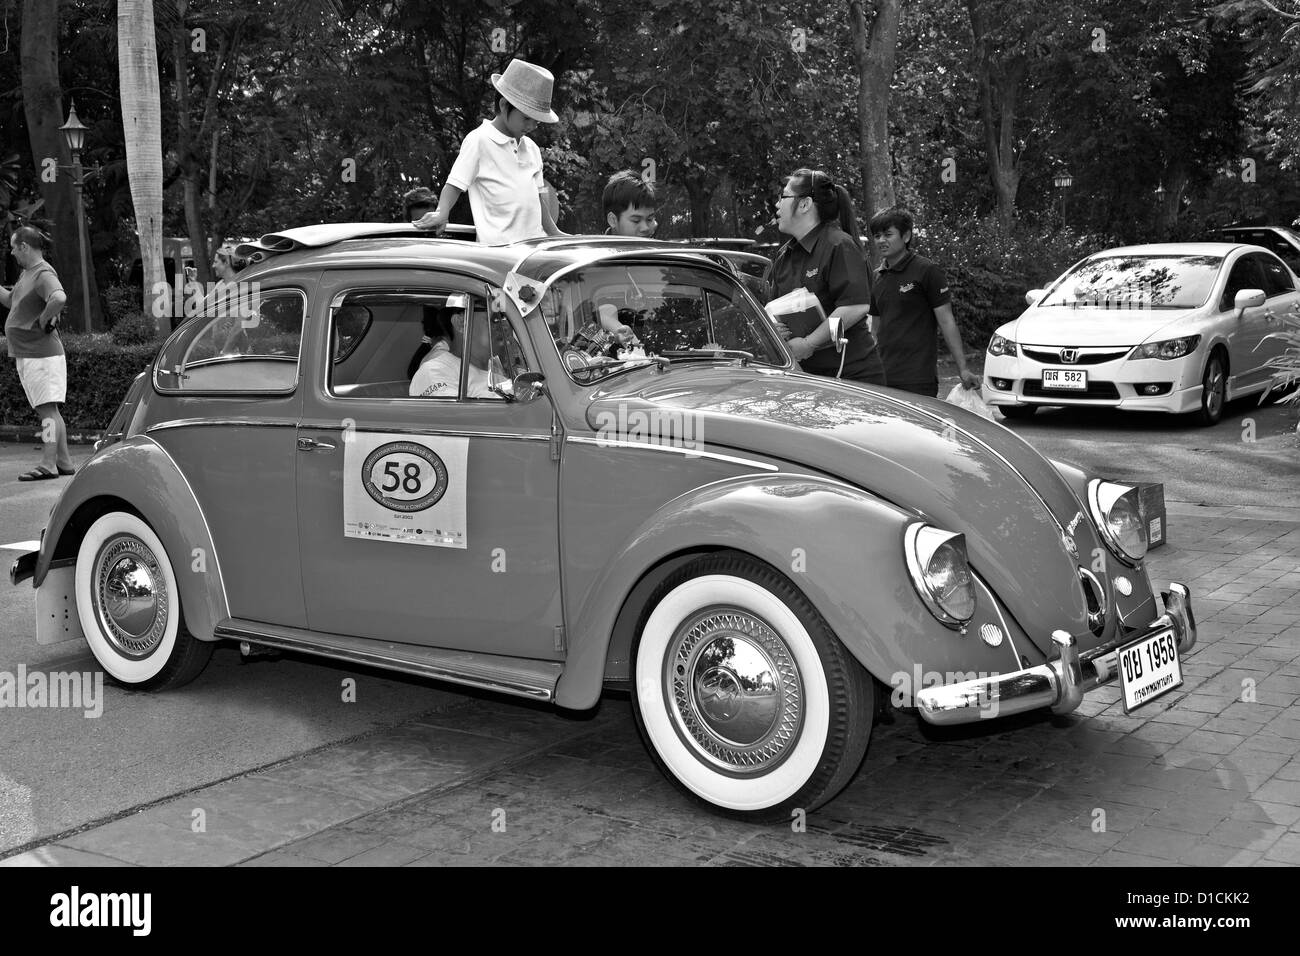 50's Volkswagen Beetle and passengers at a vintage car rally. Thailand S. E. Asia Black and white photography - Stock Image